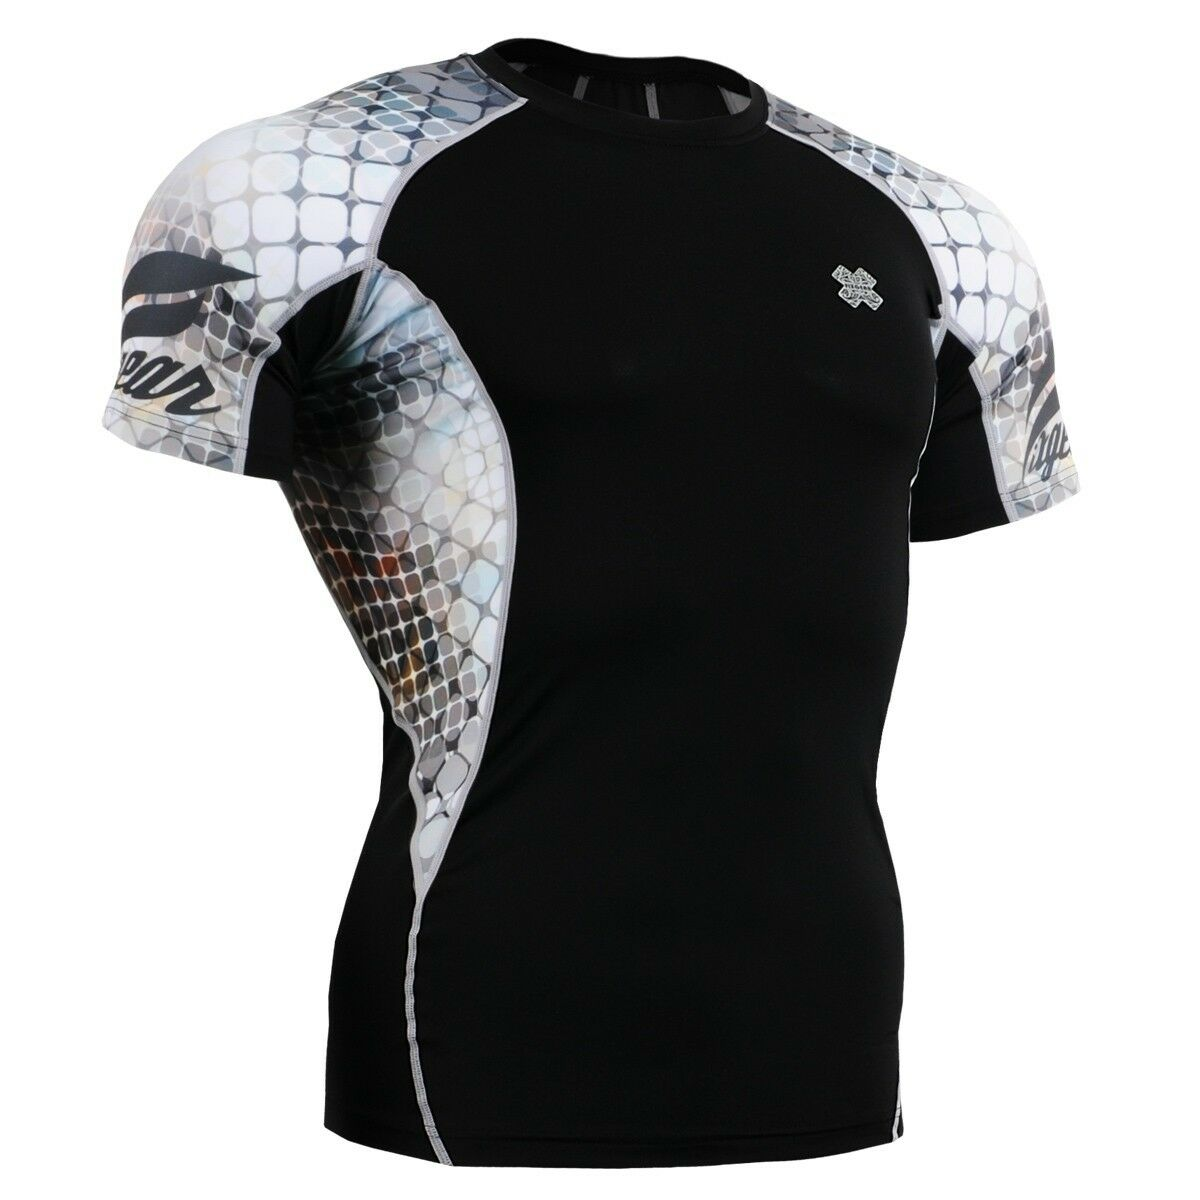 FIXGEAR C2S-B38 Compression Base Layer Workout Shirt Sportswear Gym MMA